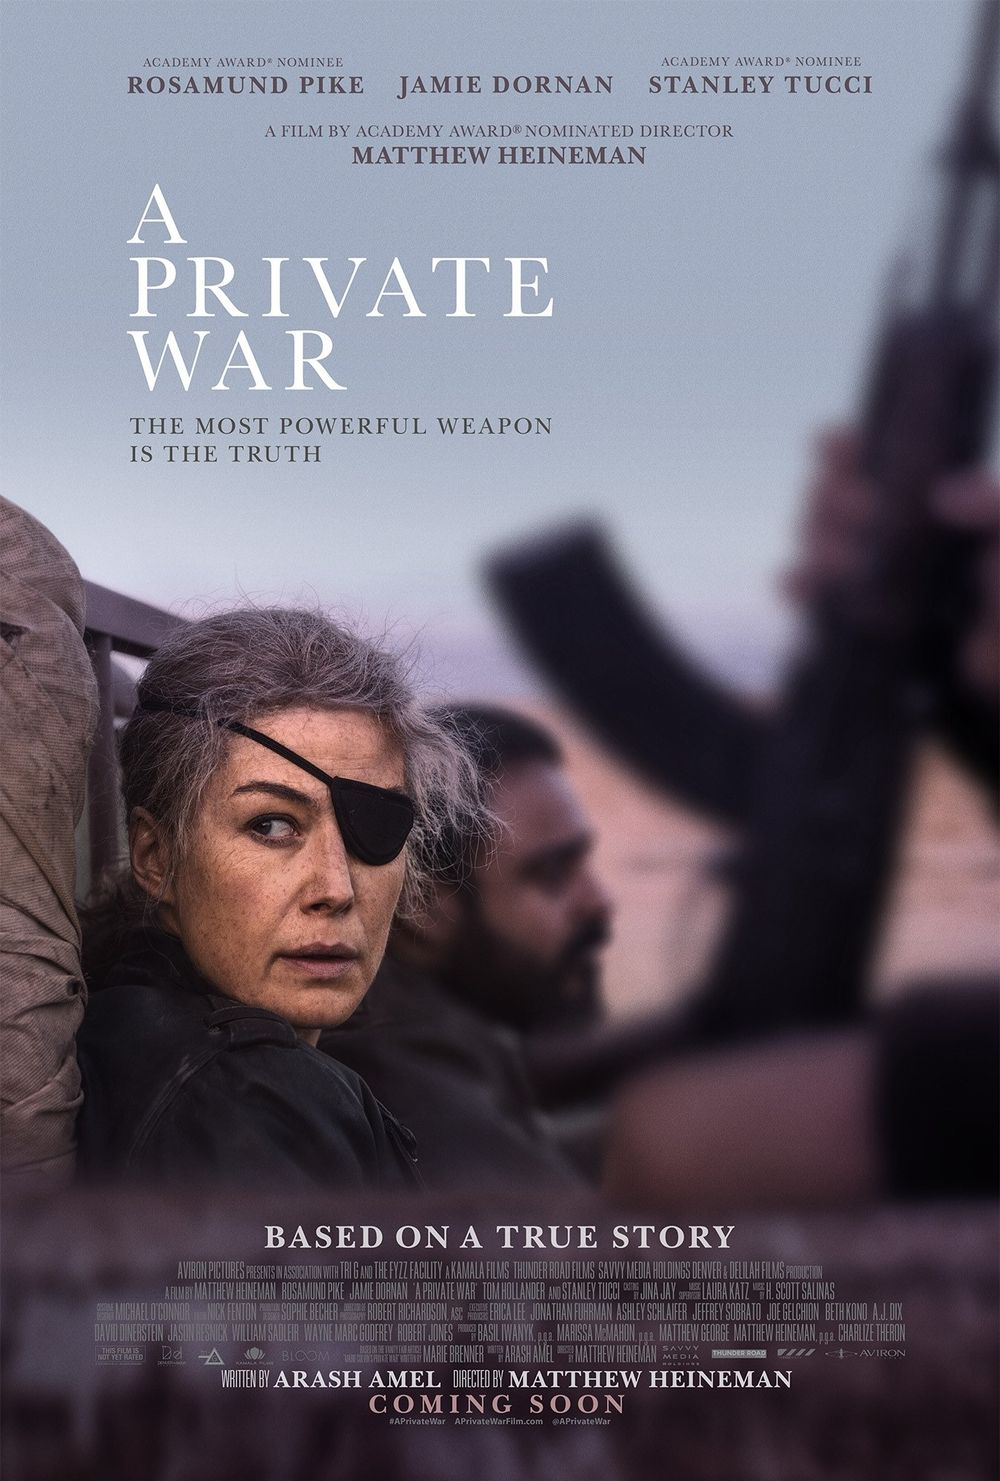 A Private War Movie Review